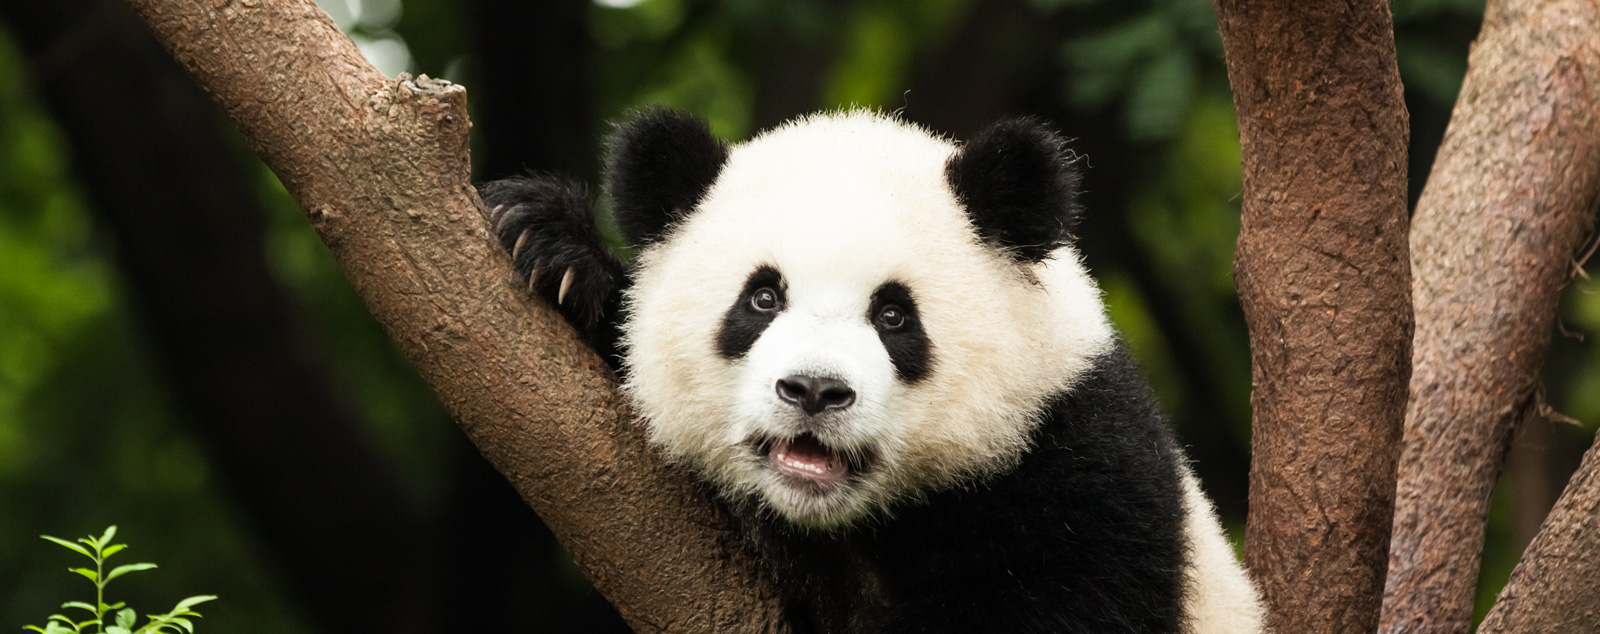 A giant panda with a white face and black eye patches and ears